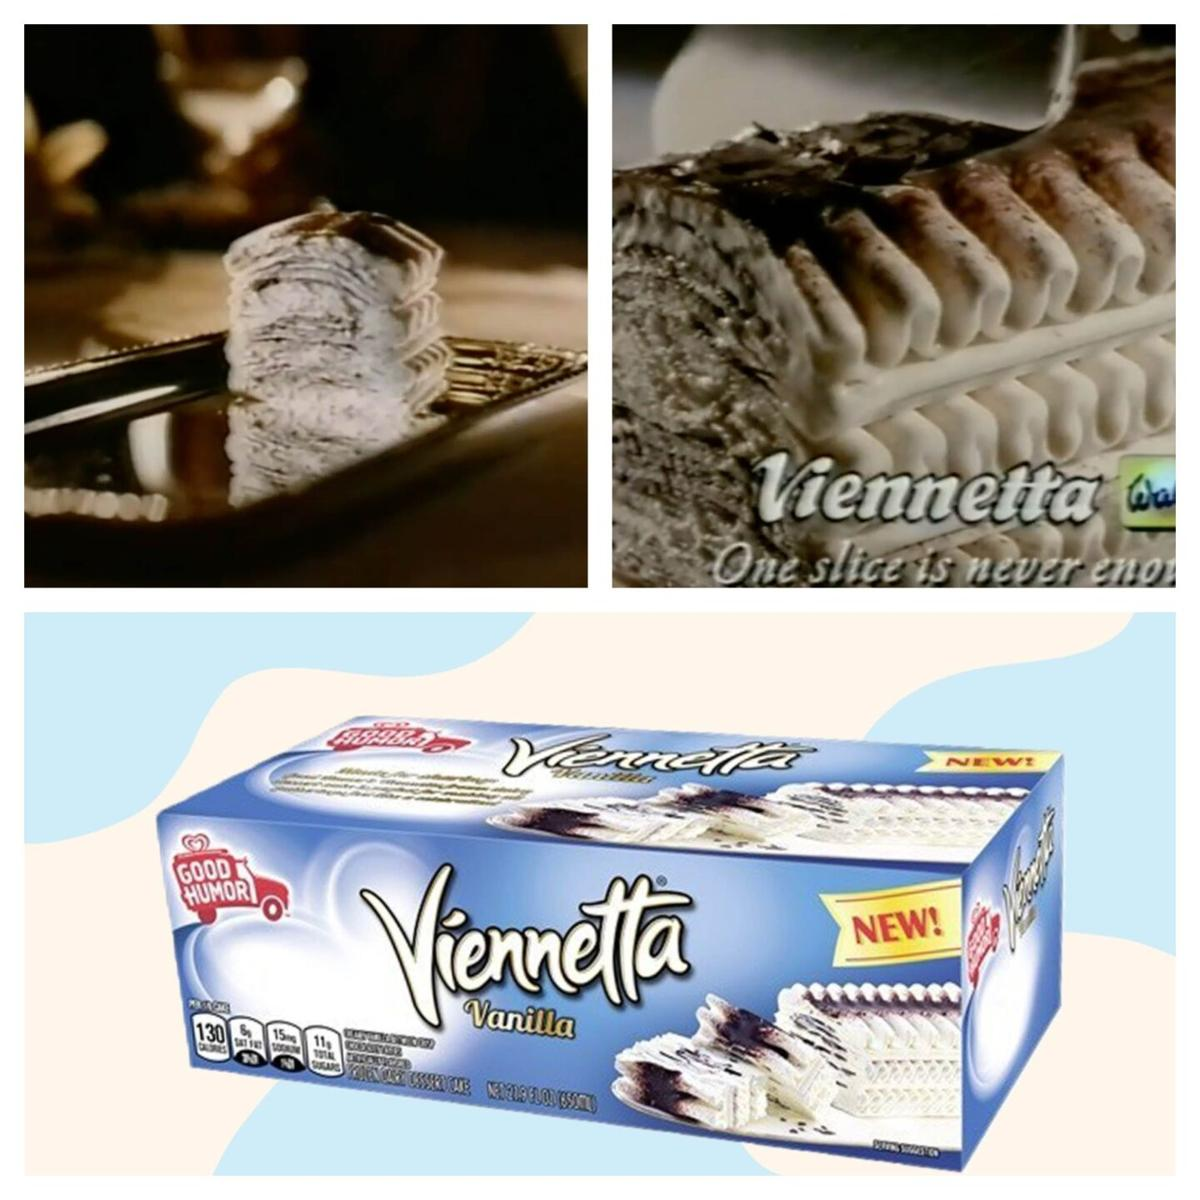 Back in the day, the Viennetta ice cream cake was the epitome of sophistication. Now is making a comeback.